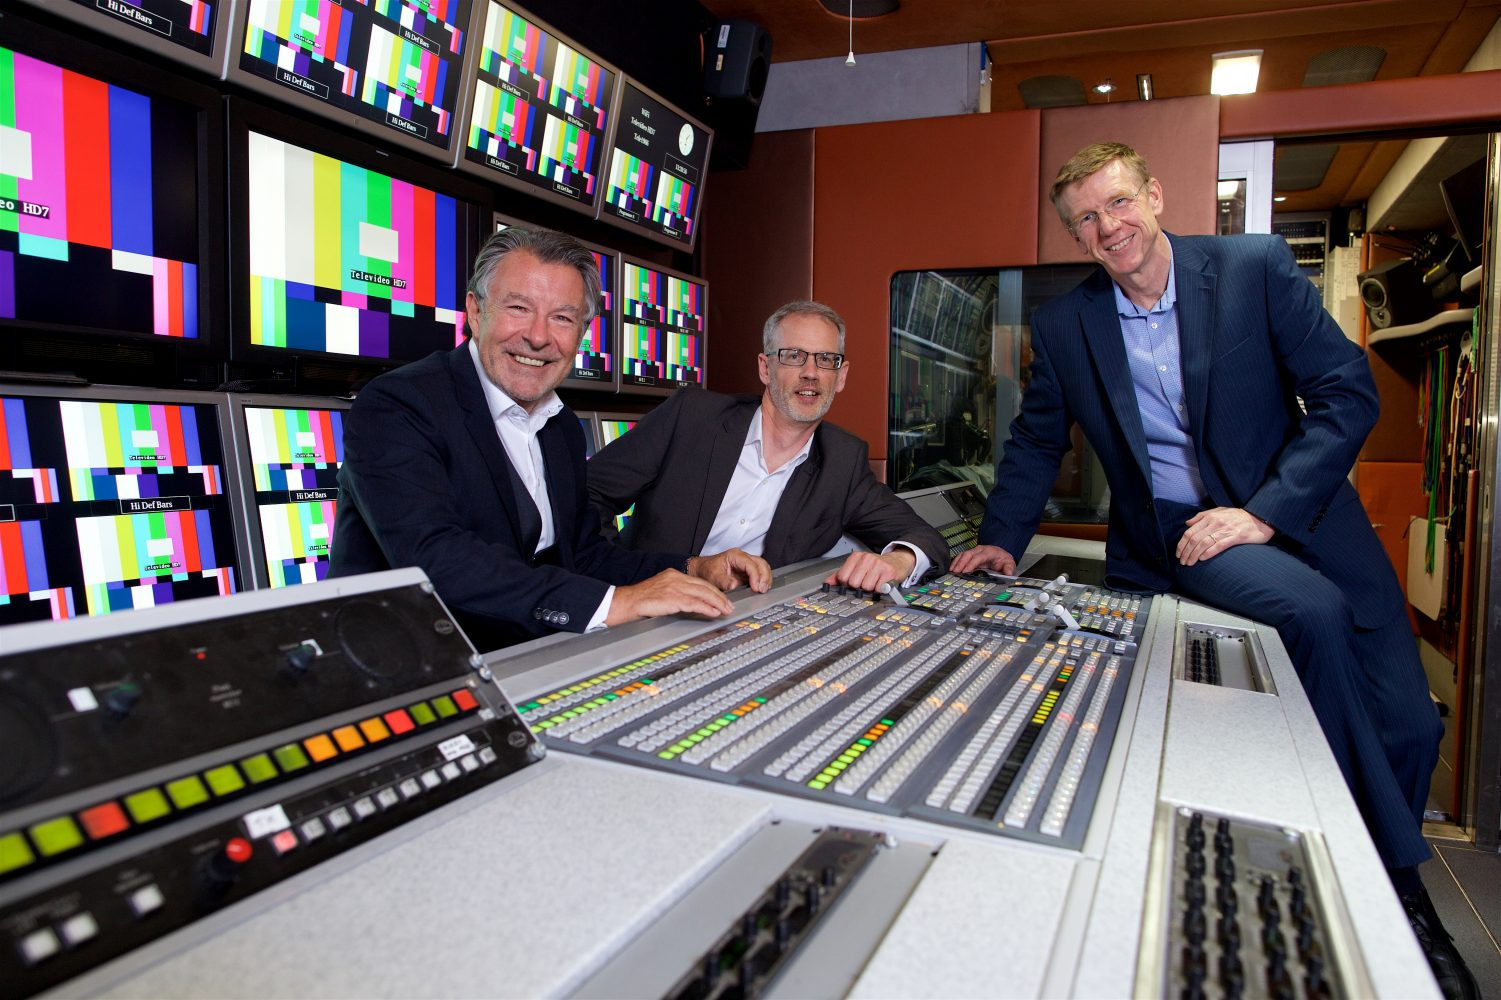 3 men in suits from Televido sat in a broadcasting room